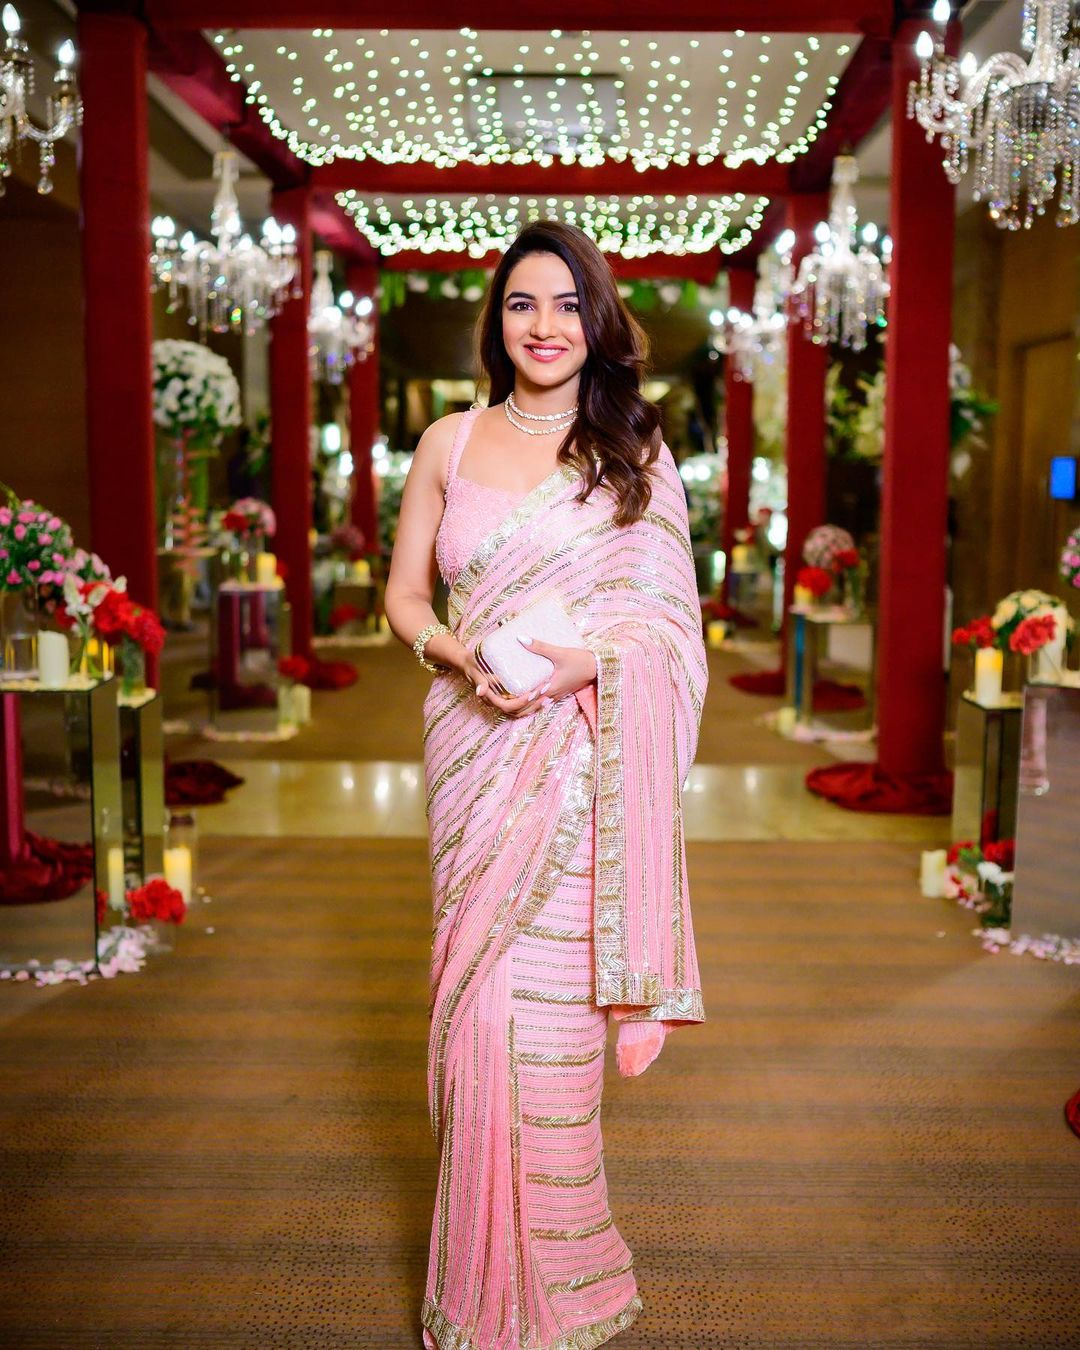 Actress jasmin bhasin goes sultry in latest set of glamorous images-Telugu Actress Jasmin Bhasin, Actress Jasmin Bhasin Goes Sultry In Latest Set Of Glamorous Images, Images, Jasmin Bhasin, Jasmin Bhasin Latest Images, Jasmin Bhasin Latest Photos, Jasmin Bhasin Latest Telugu News, Jasmin Bhasin Measurements, Jasmin Bhasin News, Jasmin Bhasin Photo Download, Jasmin Bhasin Photo Hd, Jasmin Bhasin Photos, Jasmin Bhasin Photos Instagram, Jasmin Bhasin Pictures, Tv Show Actress Jasmin Bhasin Glamorous Images Photos,Spicy Hot Pics,Images,High Resolution WallPapers Download